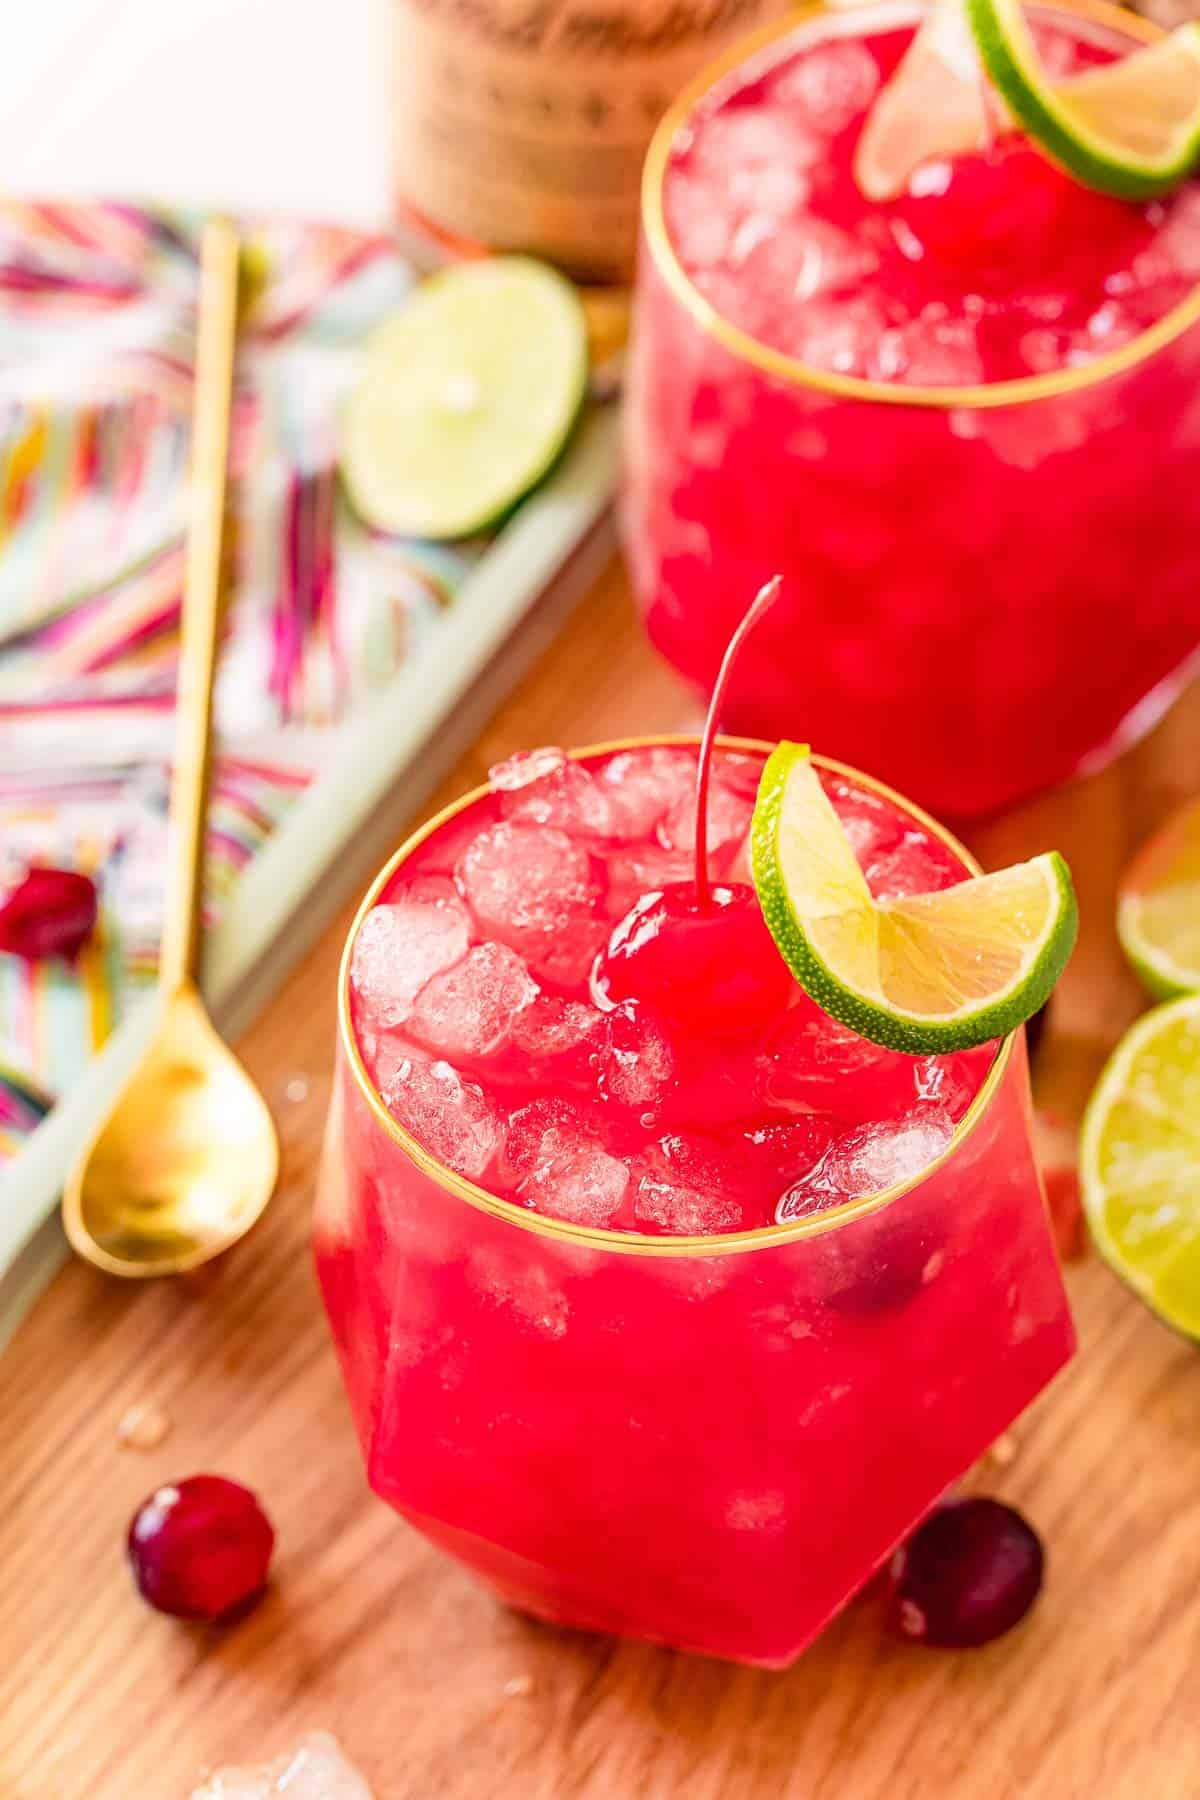 Overhead view of two bright red drinks with ice, a cherry, and a lime.